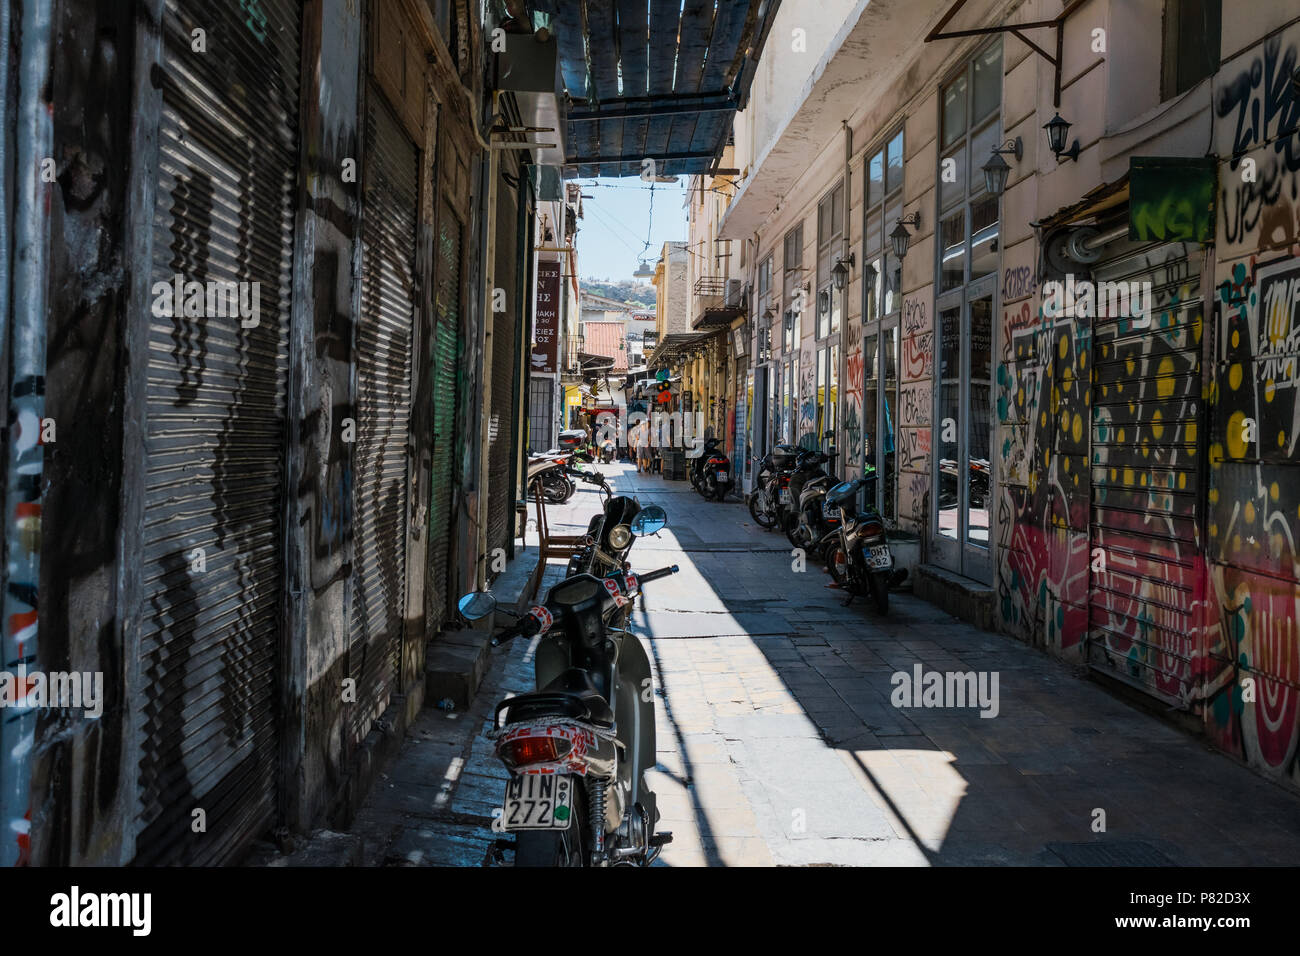 Motorcycles in shadowy tiled street of Athens, Greece. With graffiti on the walls and roller shutters. - Stock Image